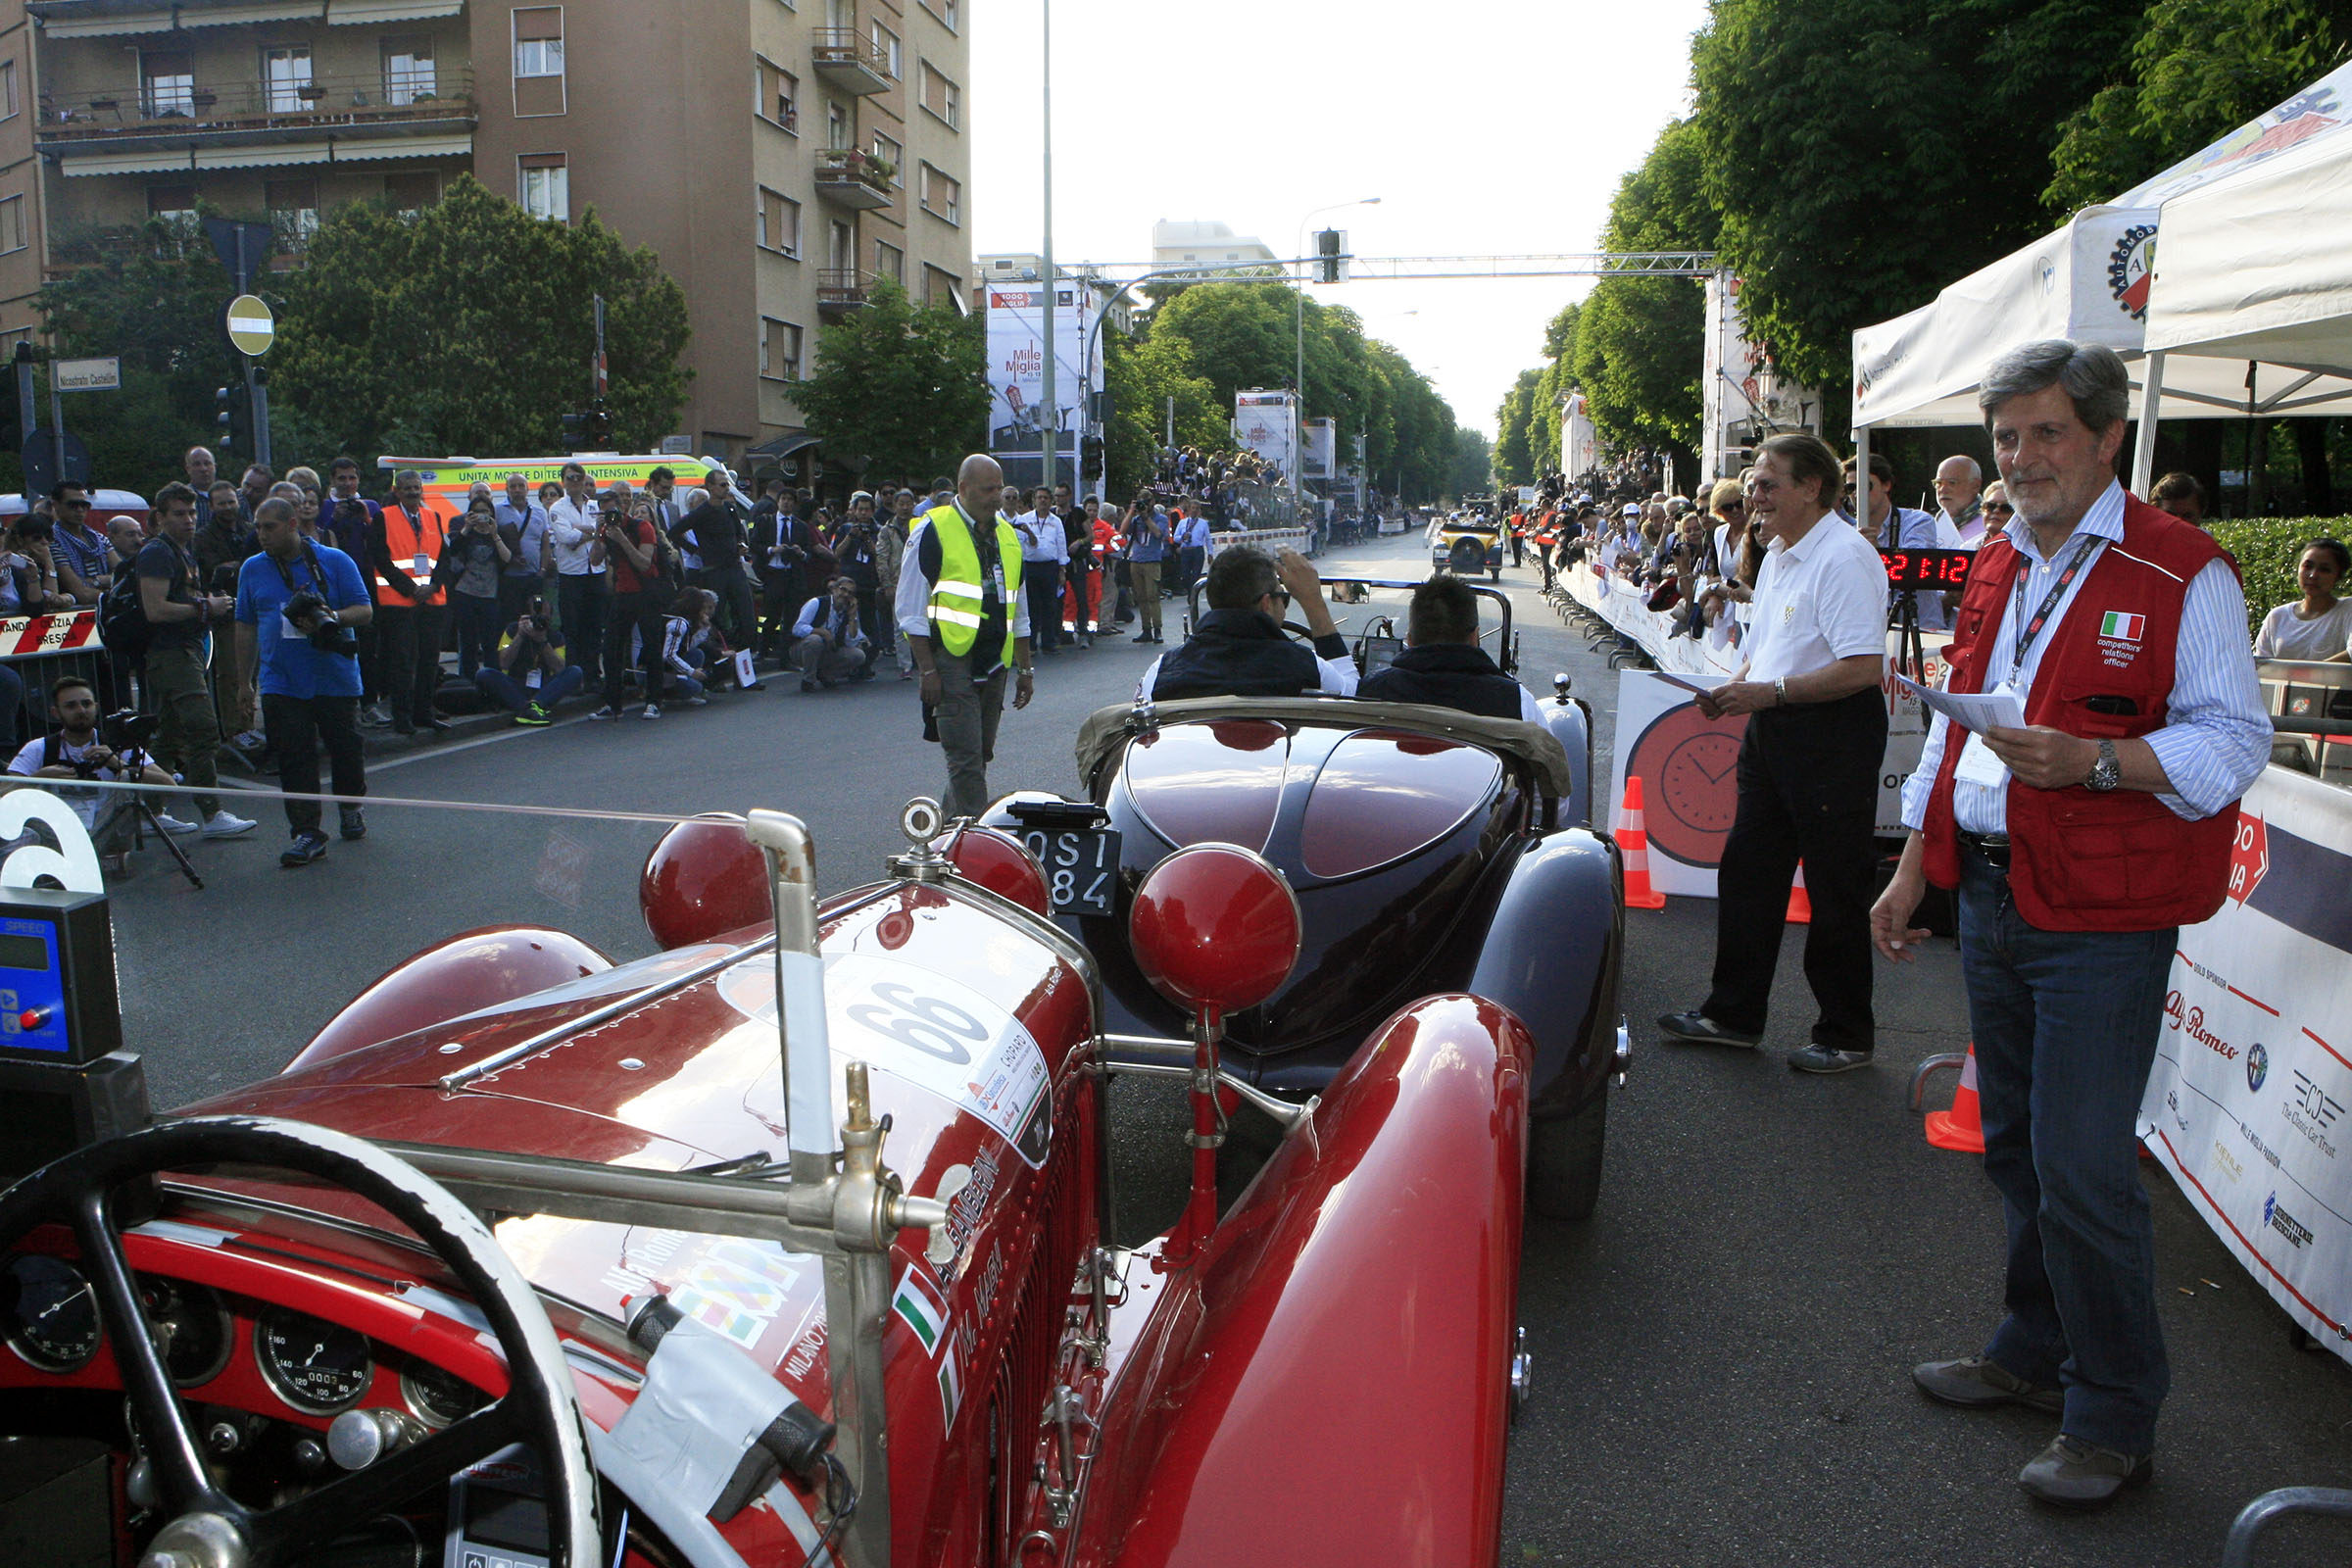 Line up for the start at Viale Venezia